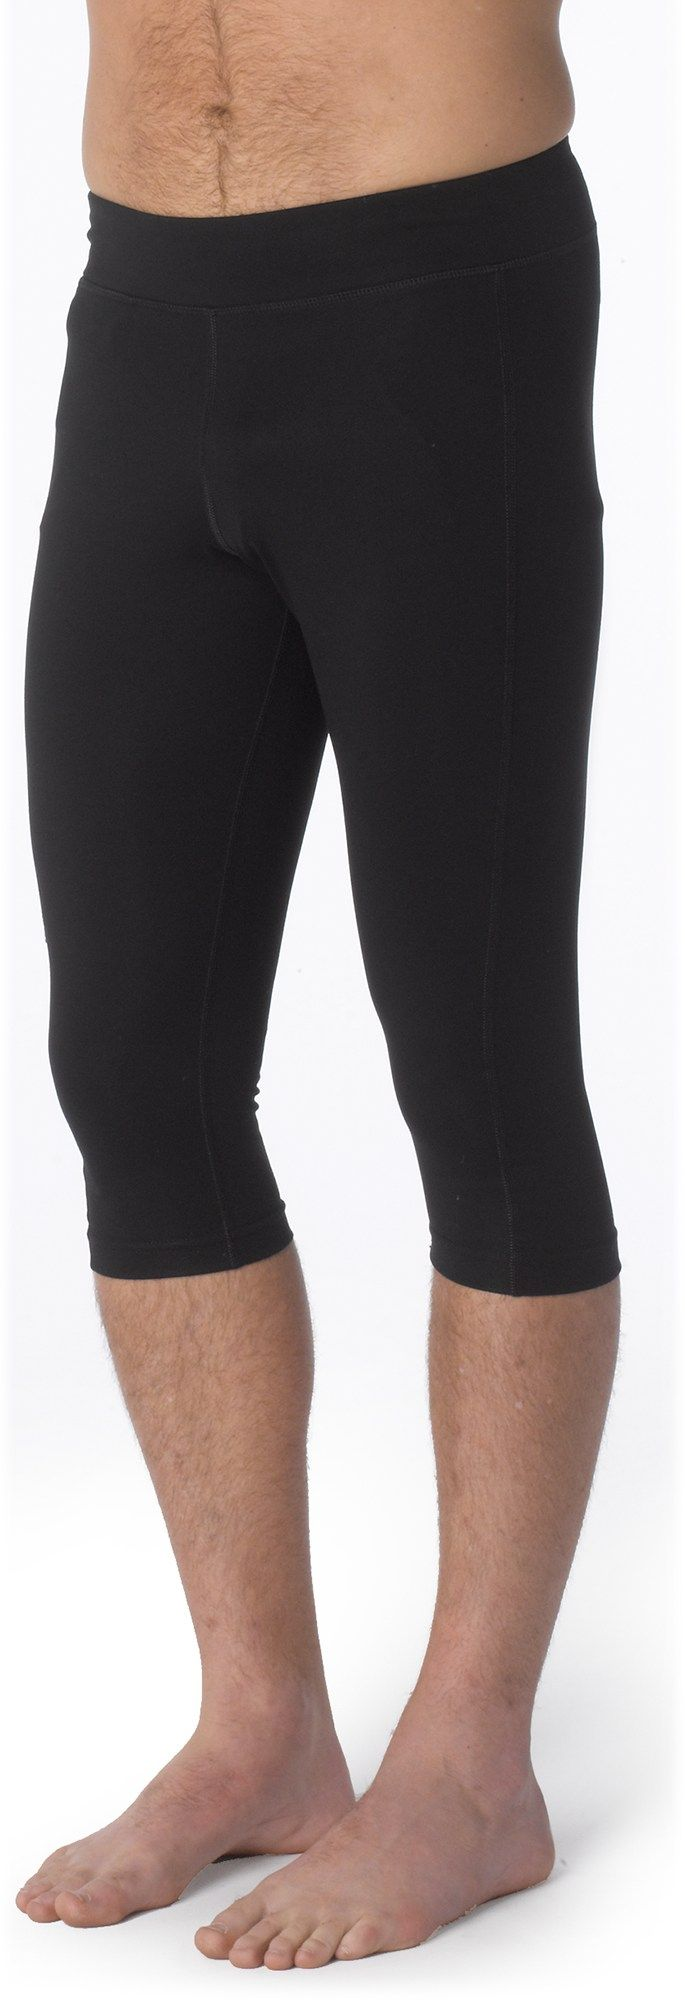 prAna JD Yoga Knickers - Men's - REI.com